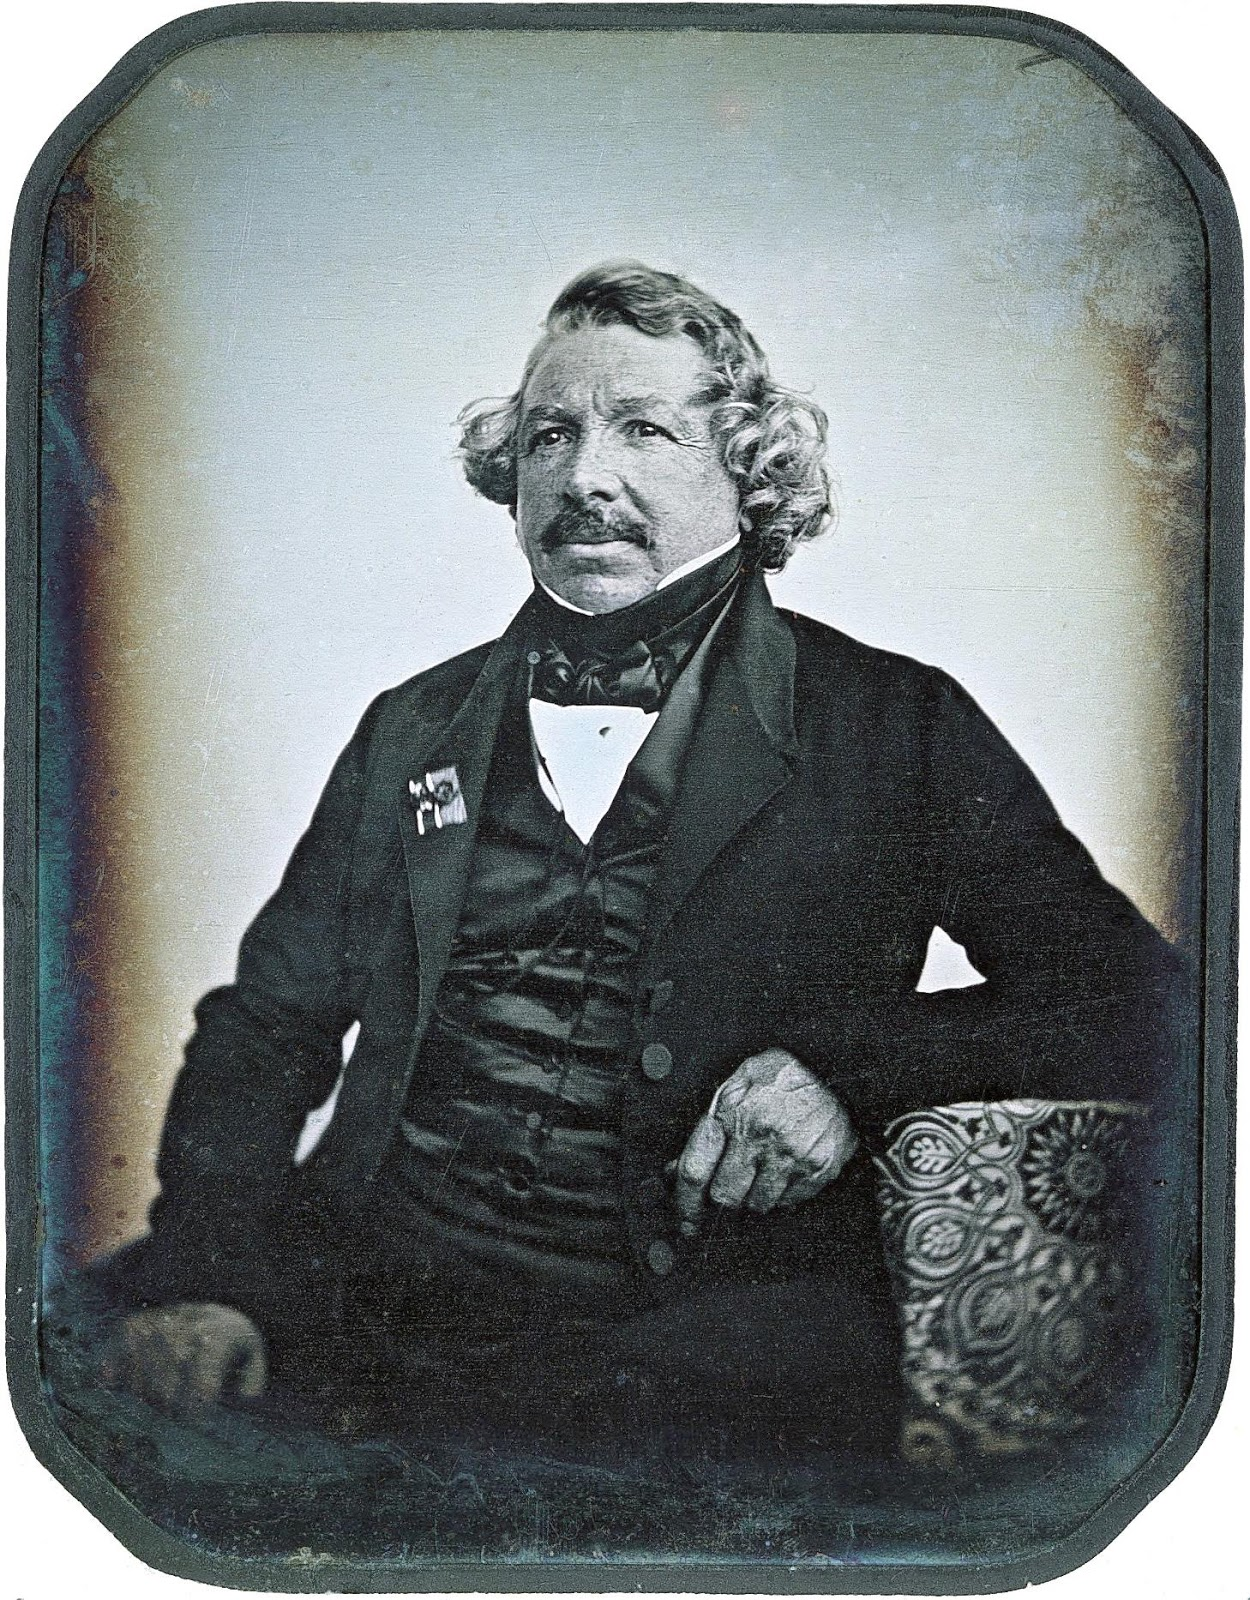 The Reel Foto: Louis Daguerre: The Father Of Photography